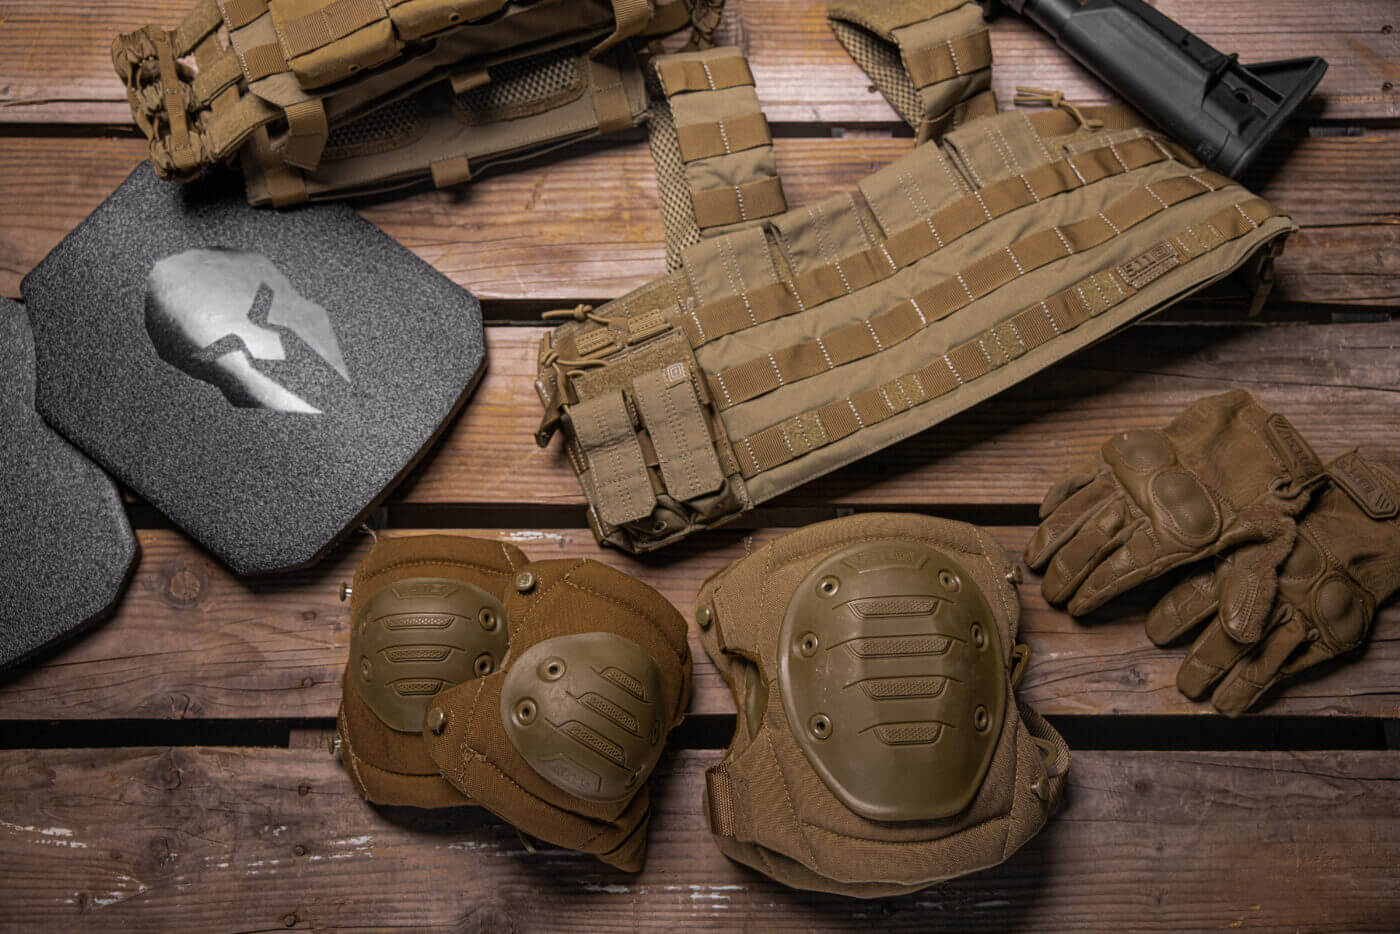 Elbow and knee pads as body armor